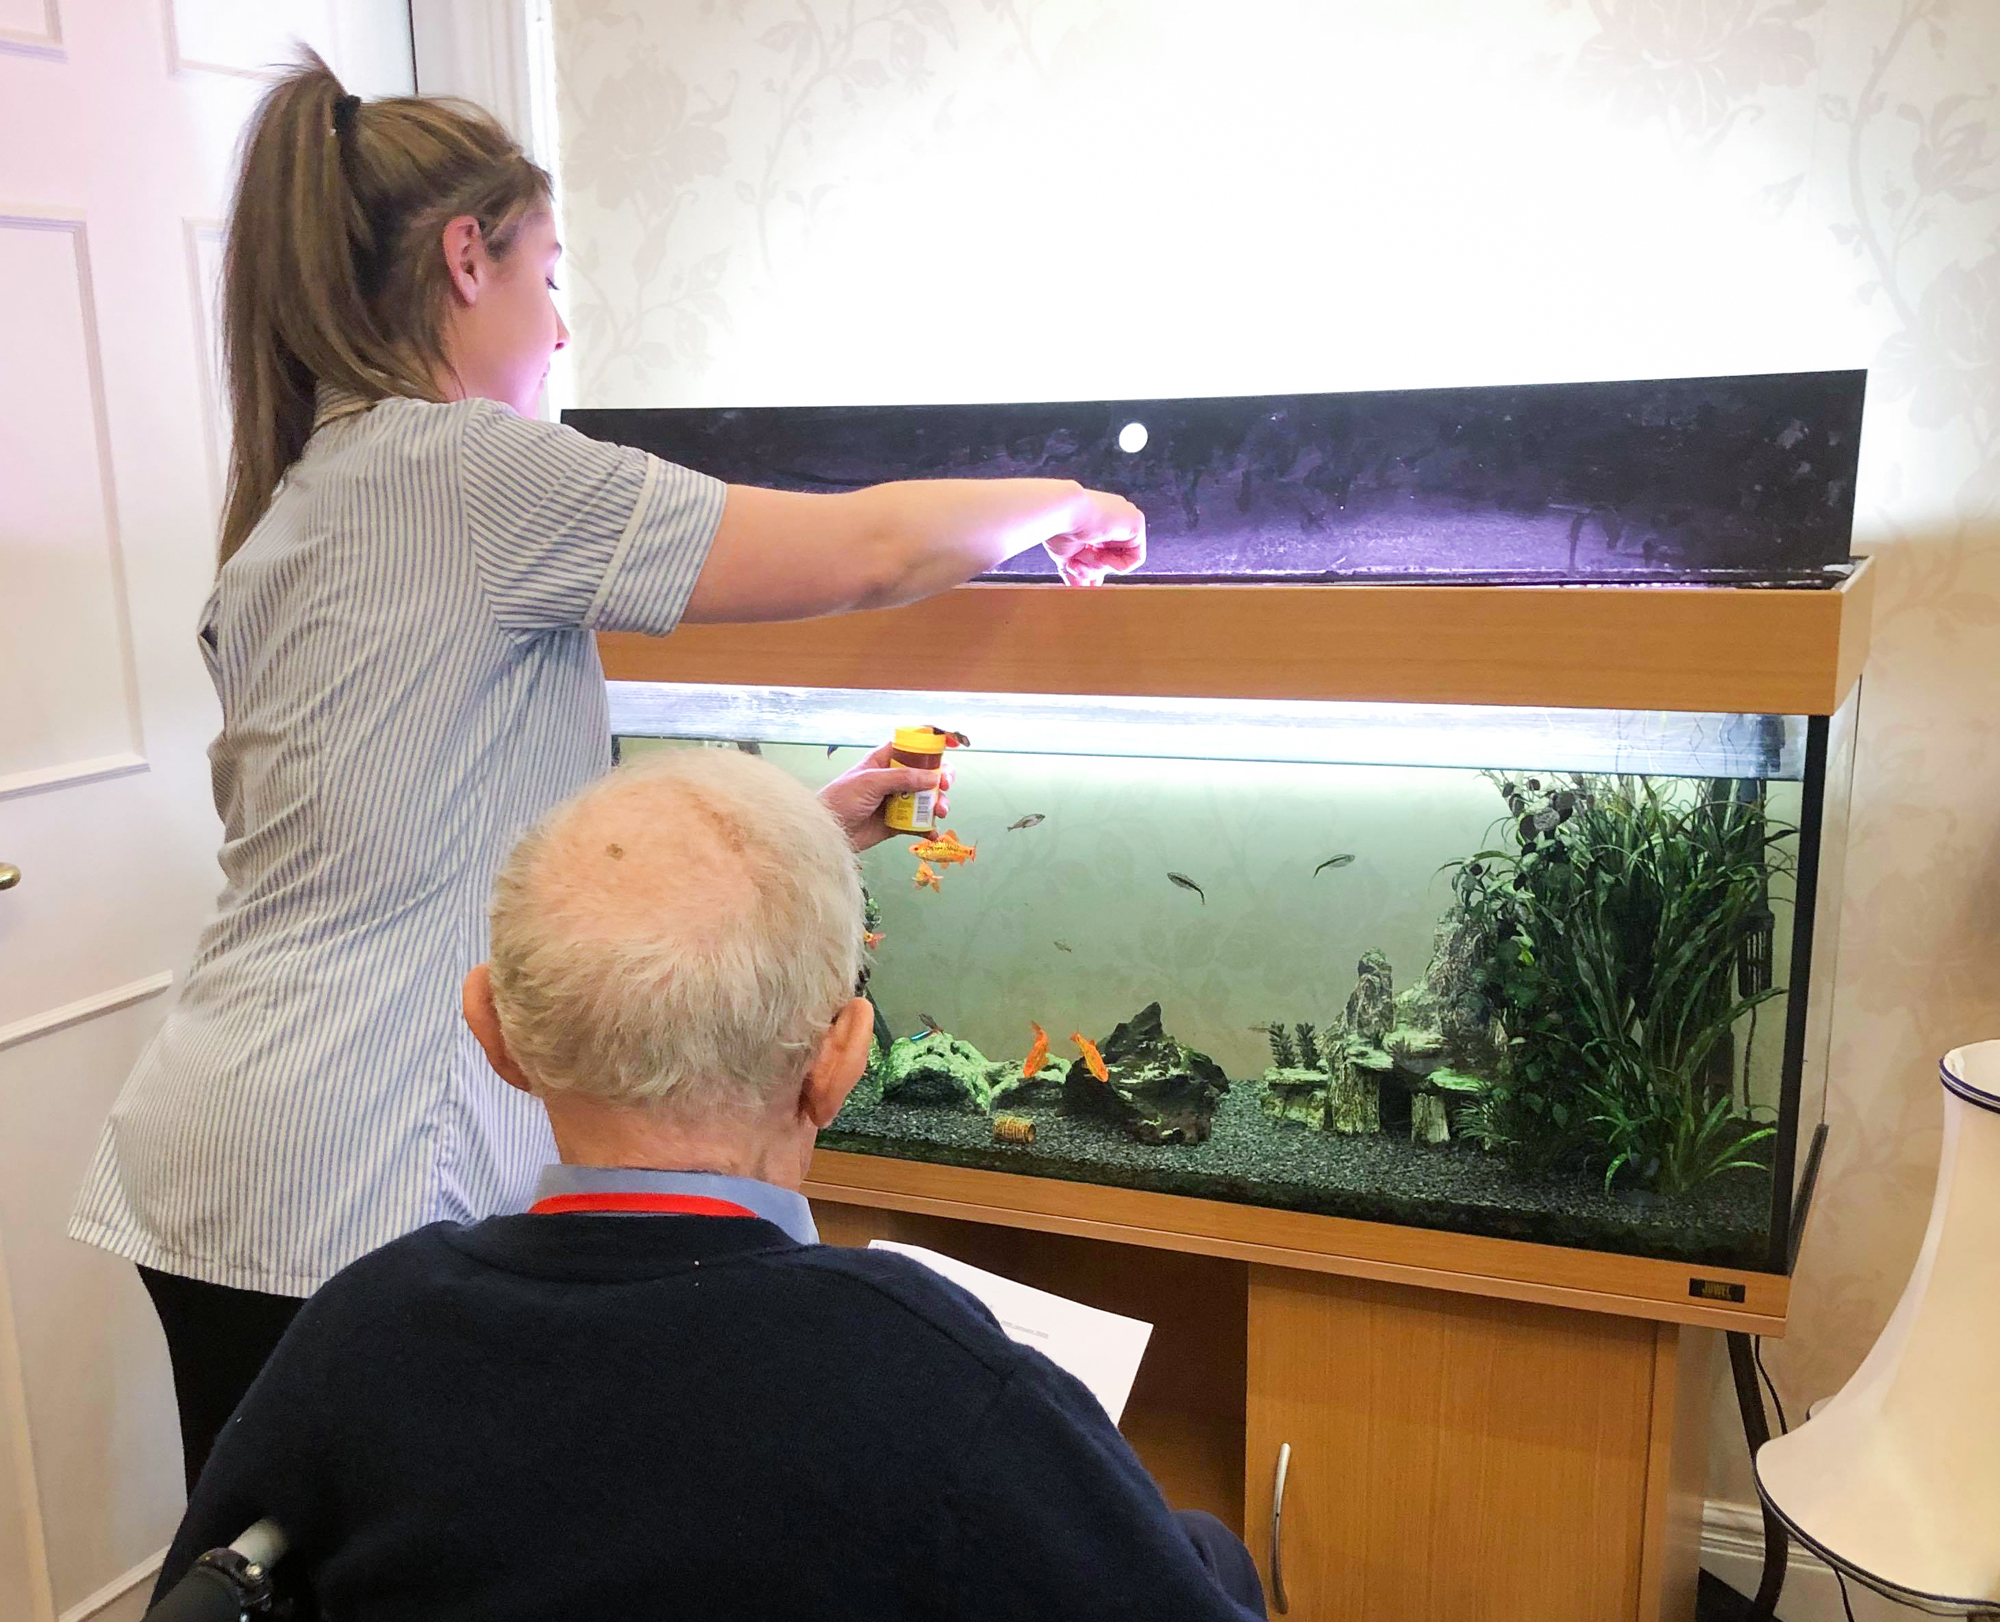 Staff and resident feeding the fish